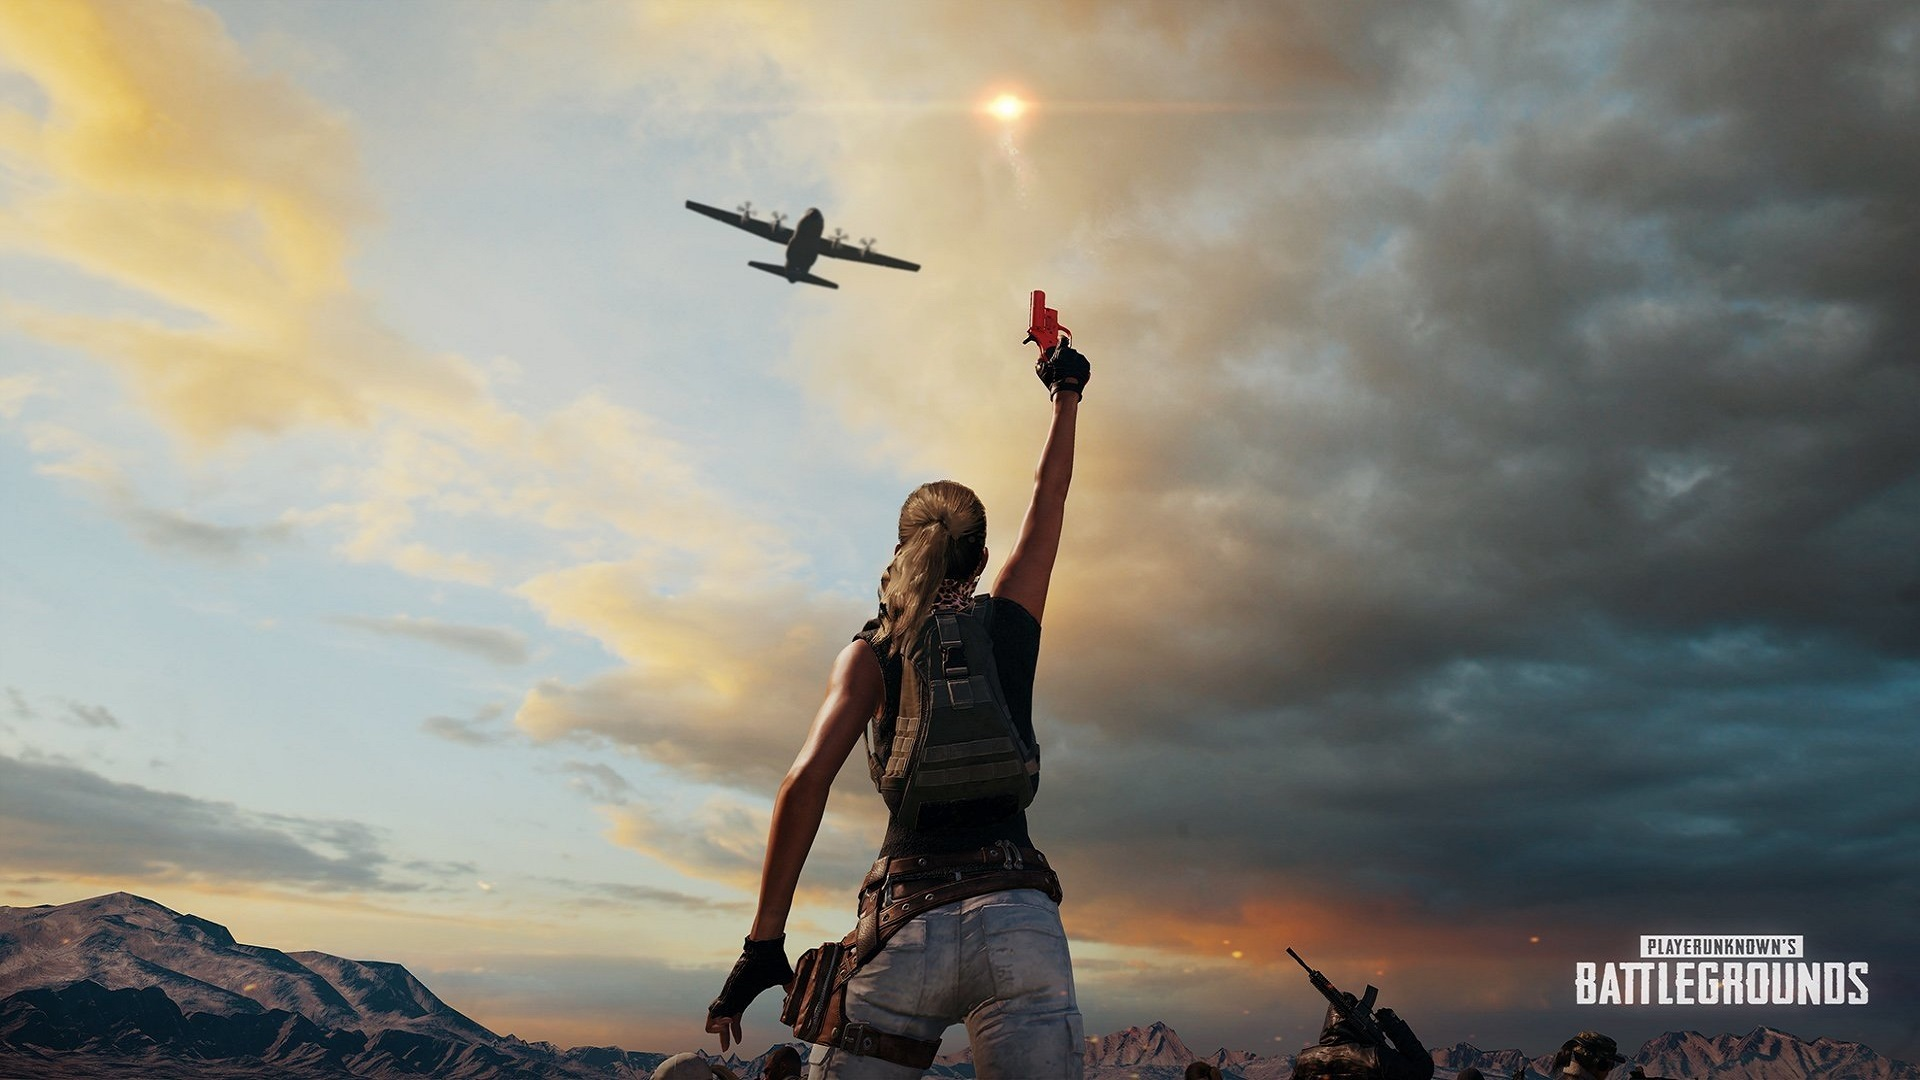 Pubg Wallpapers Download: Background Images - Read Games Review